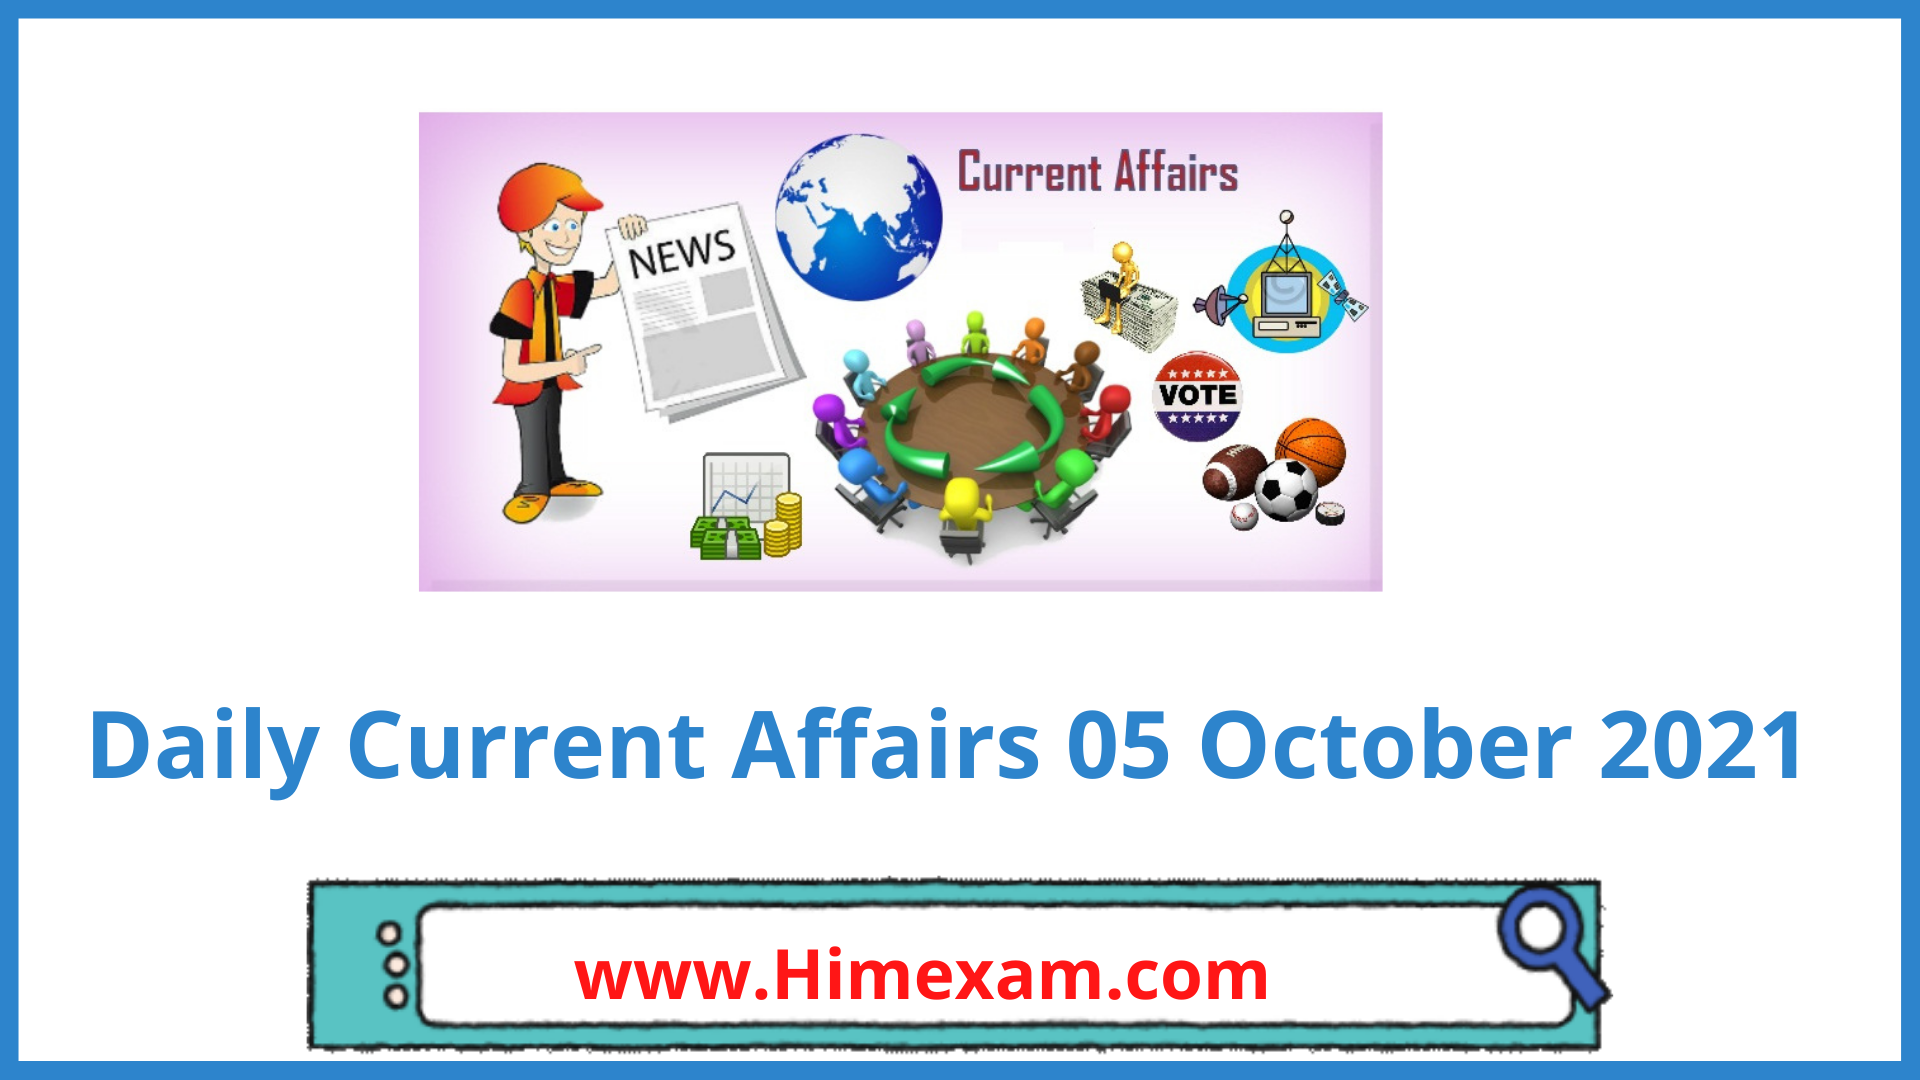 Daily Current Affairs 05 October 2021